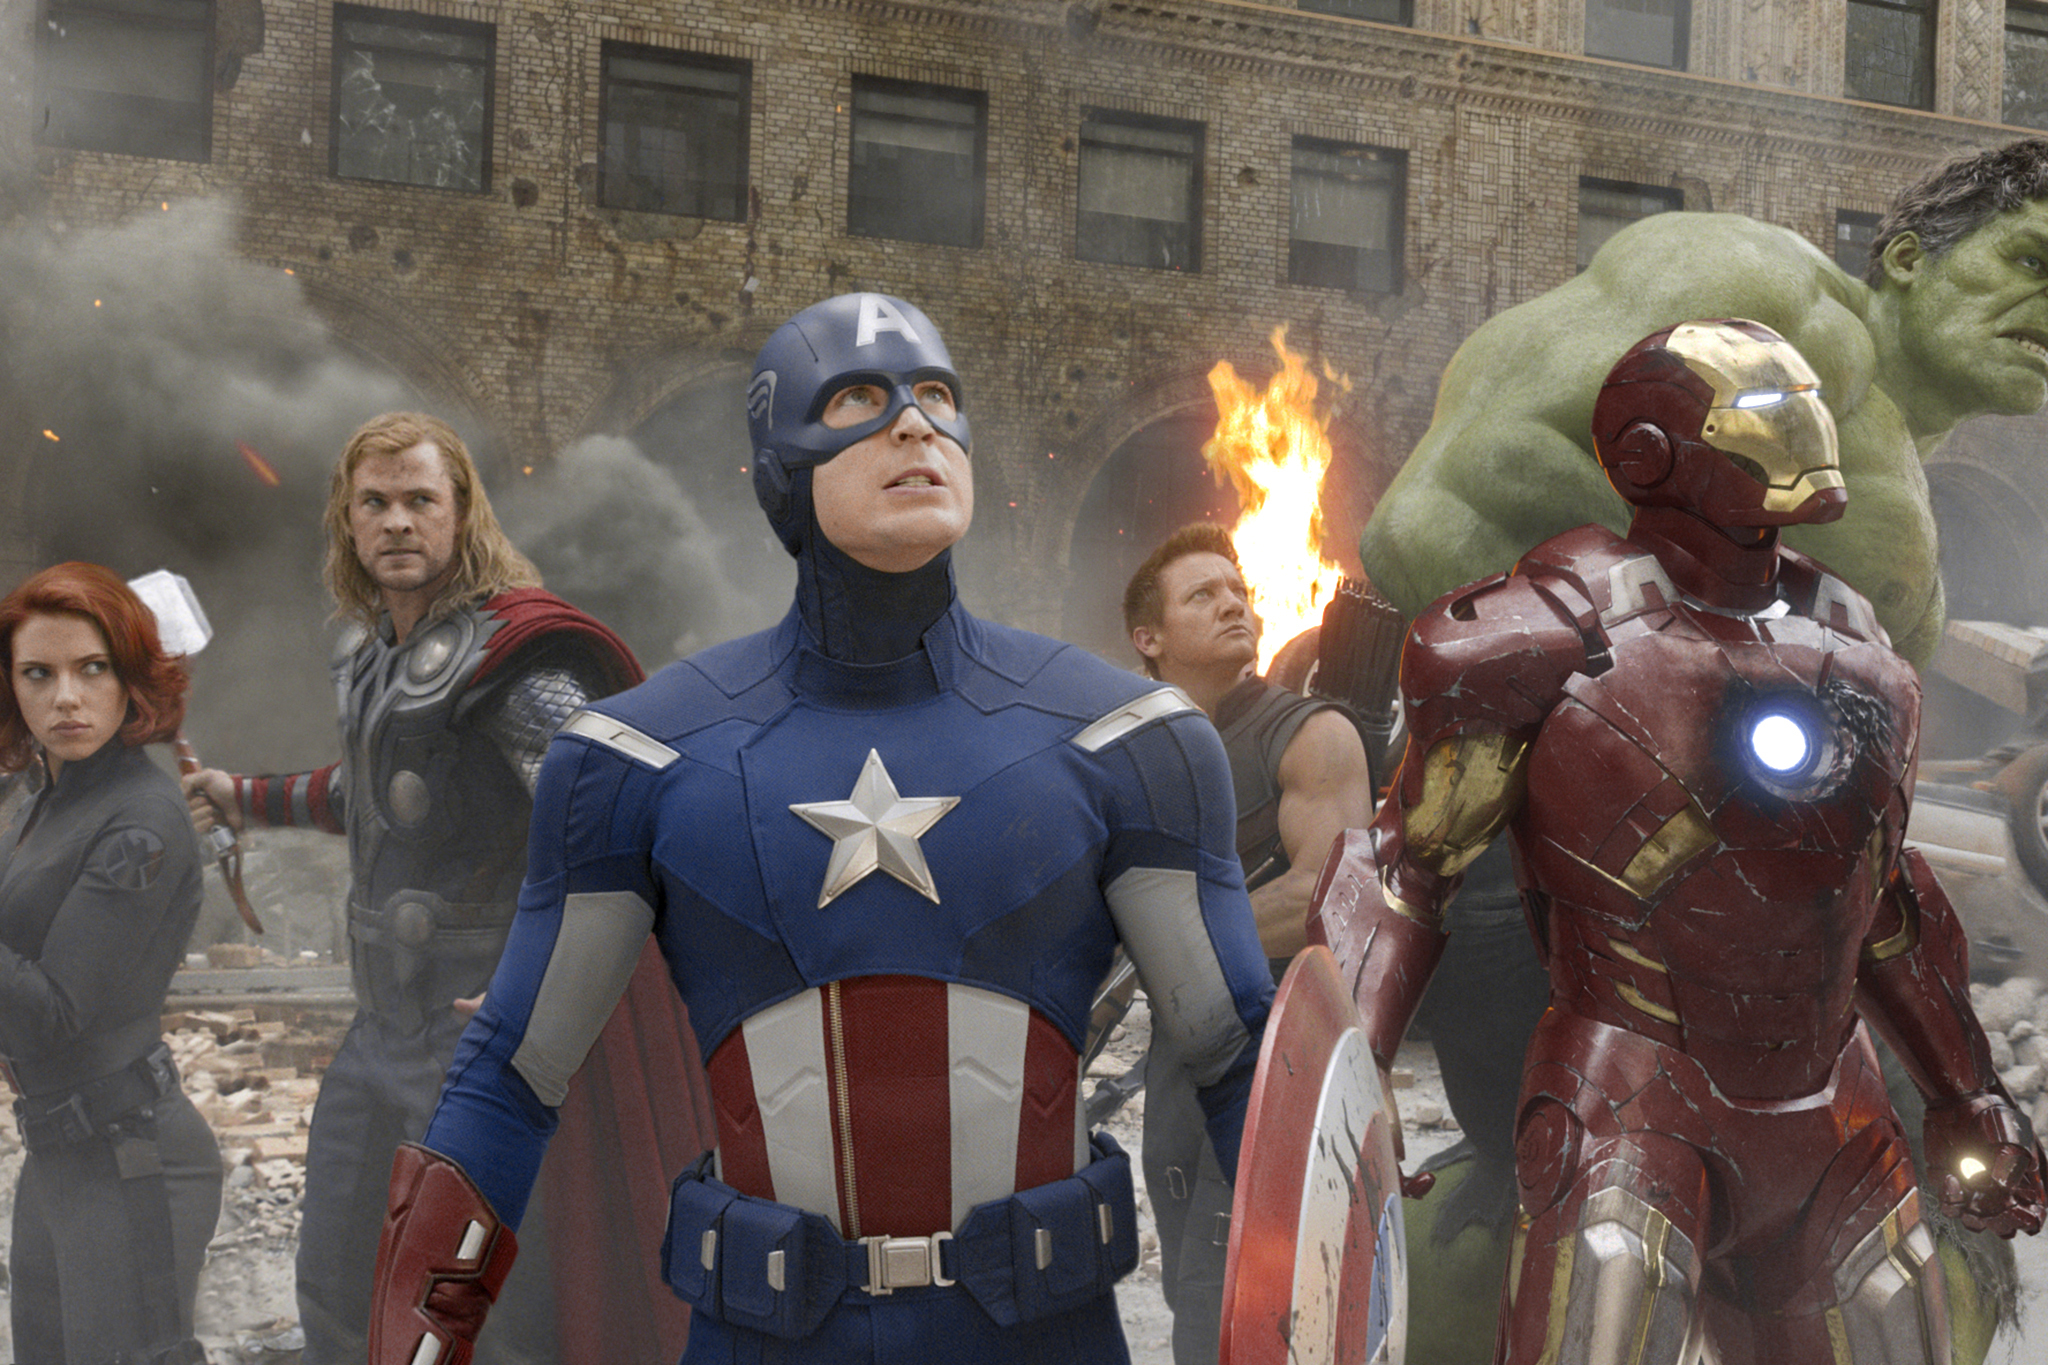 The 10 best Marvel movies, ranked